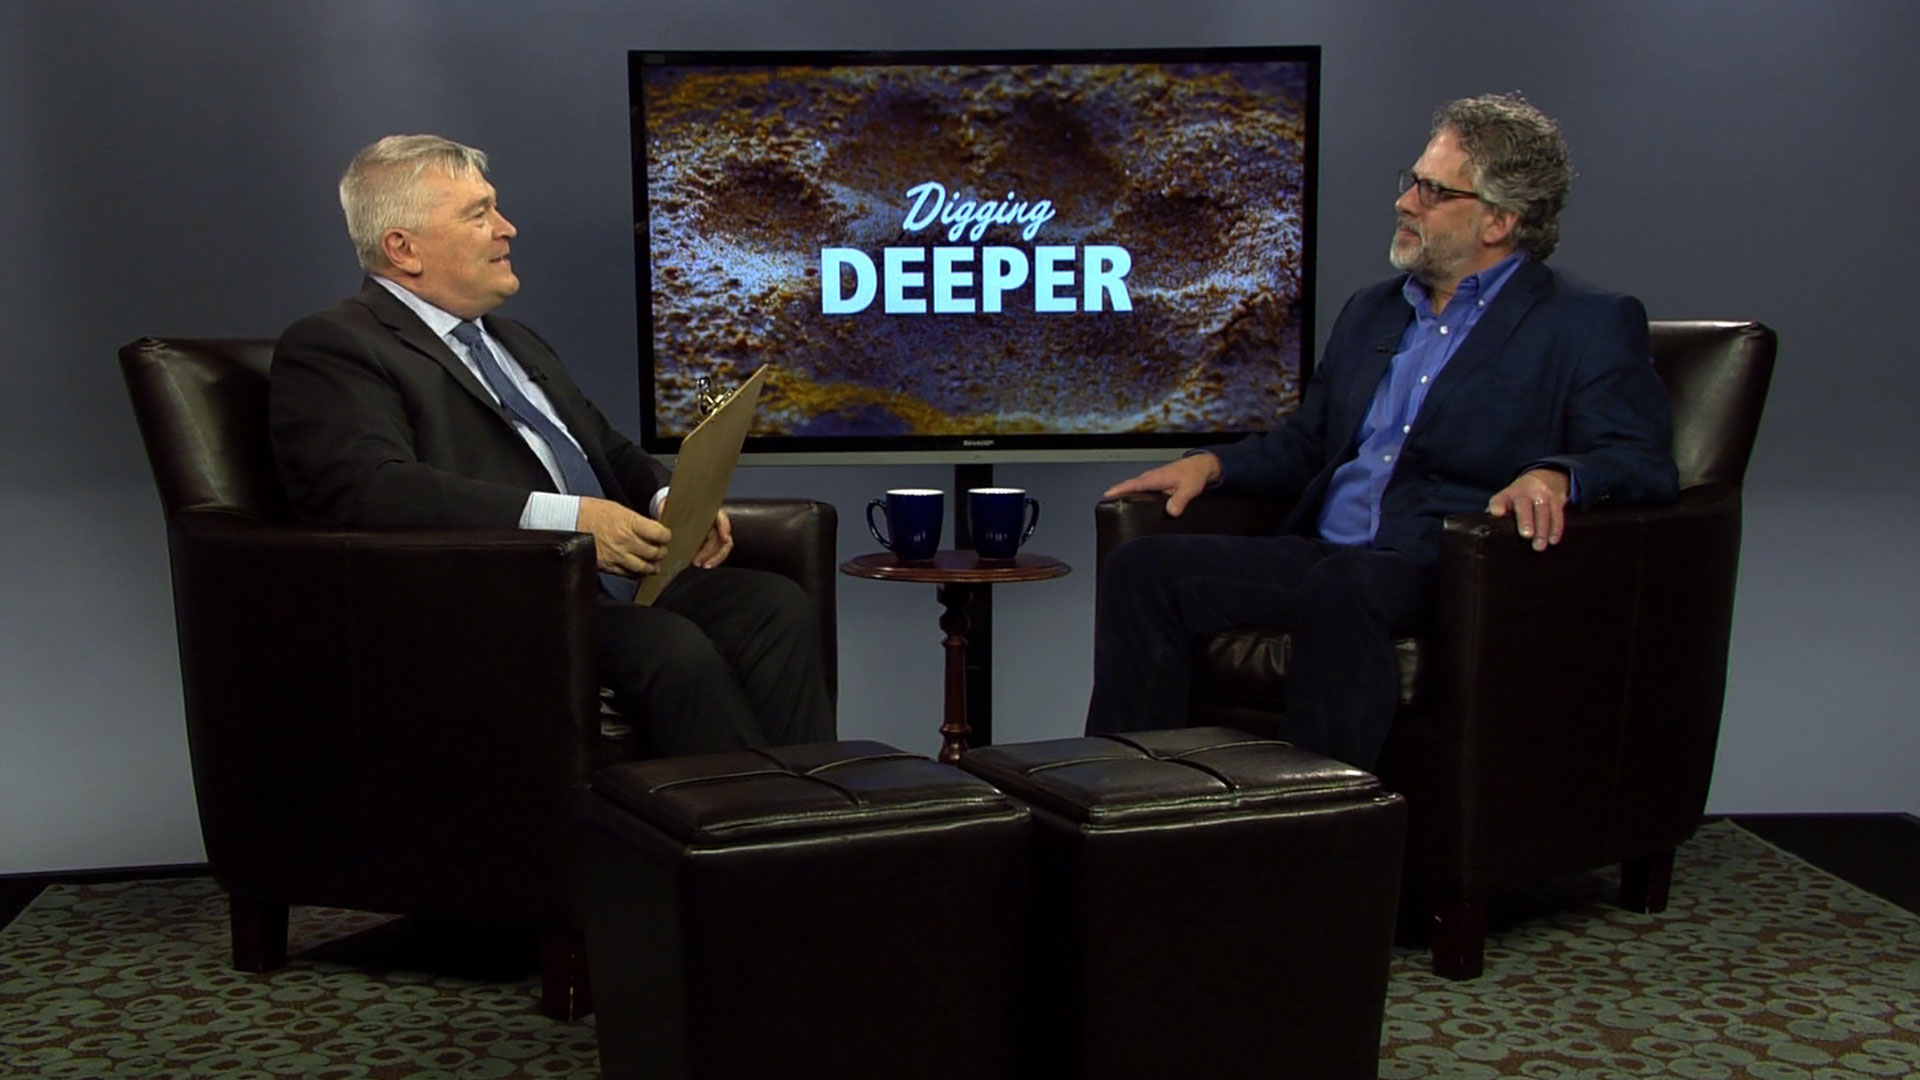 Eric Barron and guest on the set of Digging Deeper